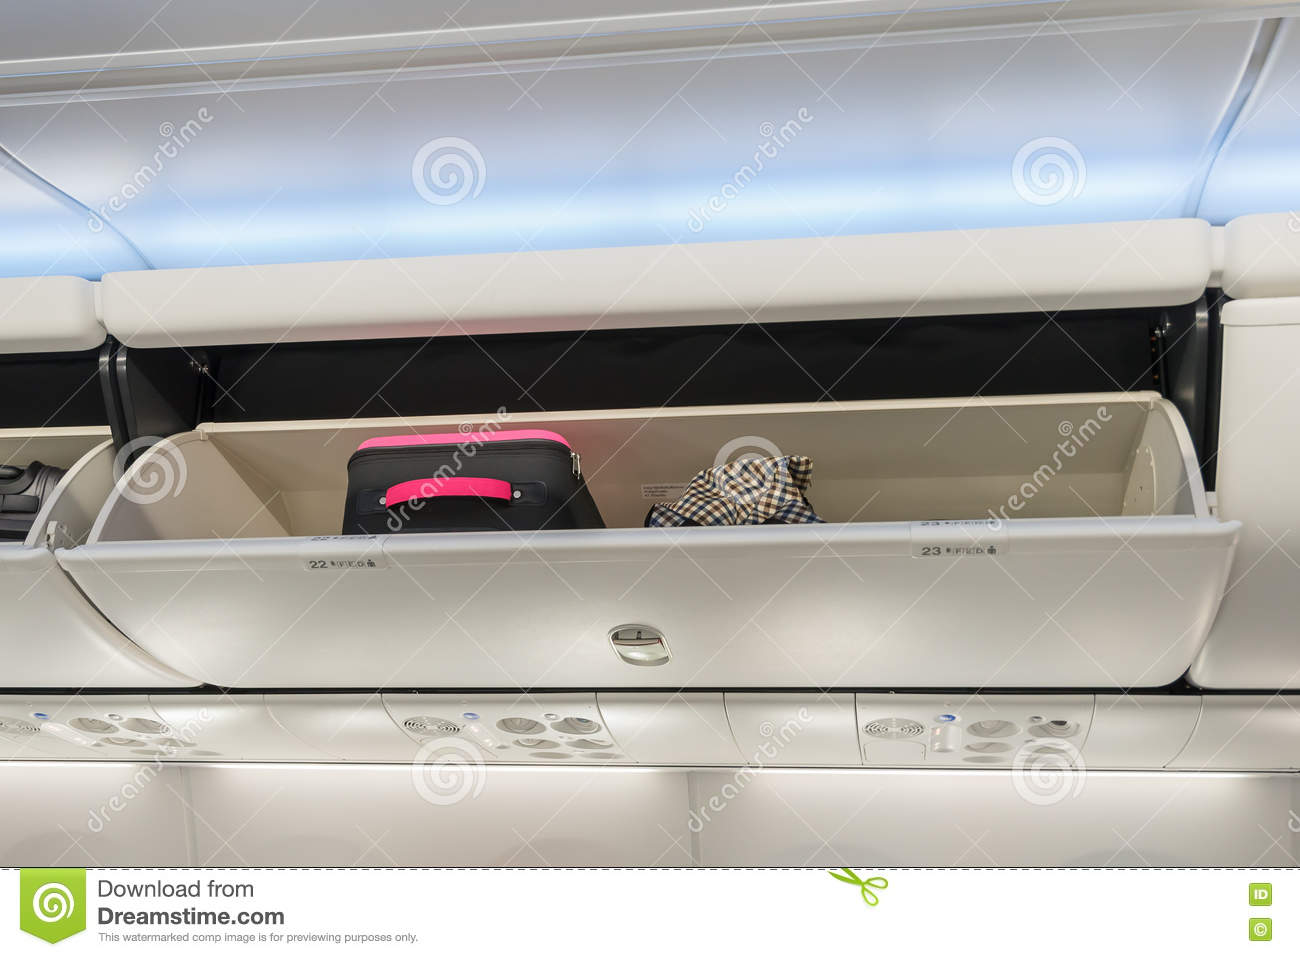 Carry-on luggage in overhead storage compartment on airplane.